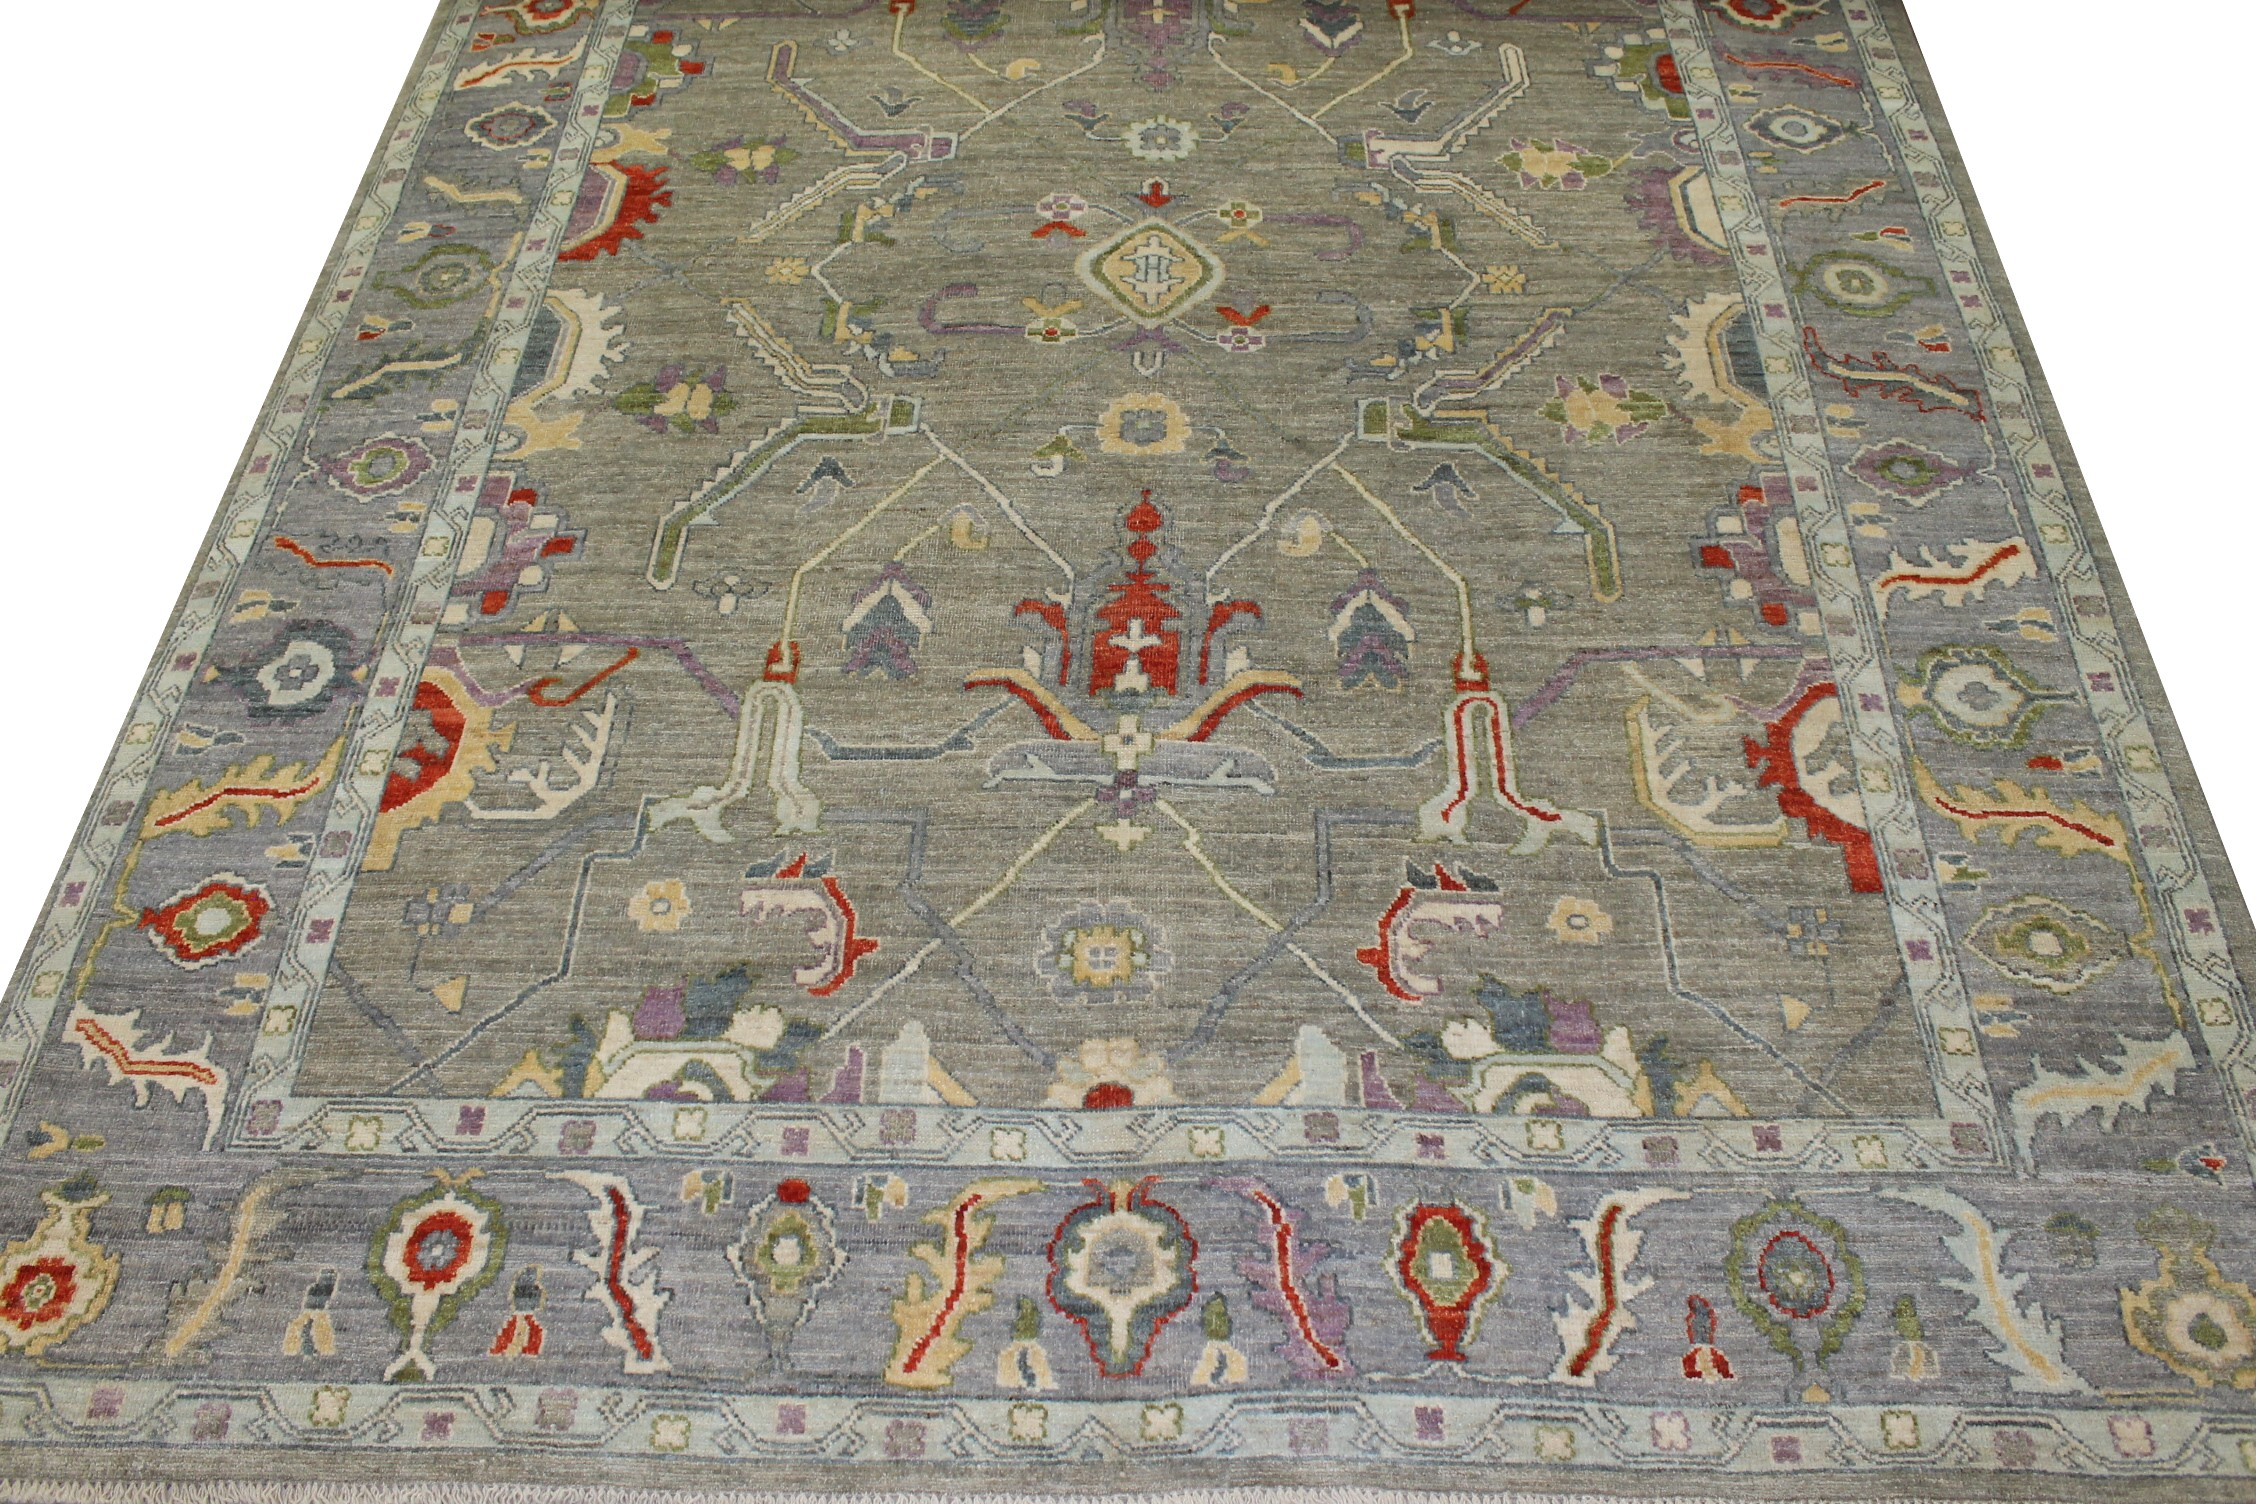 9x12 Oushak Hand Knotted Wool Area Rug - MR023077